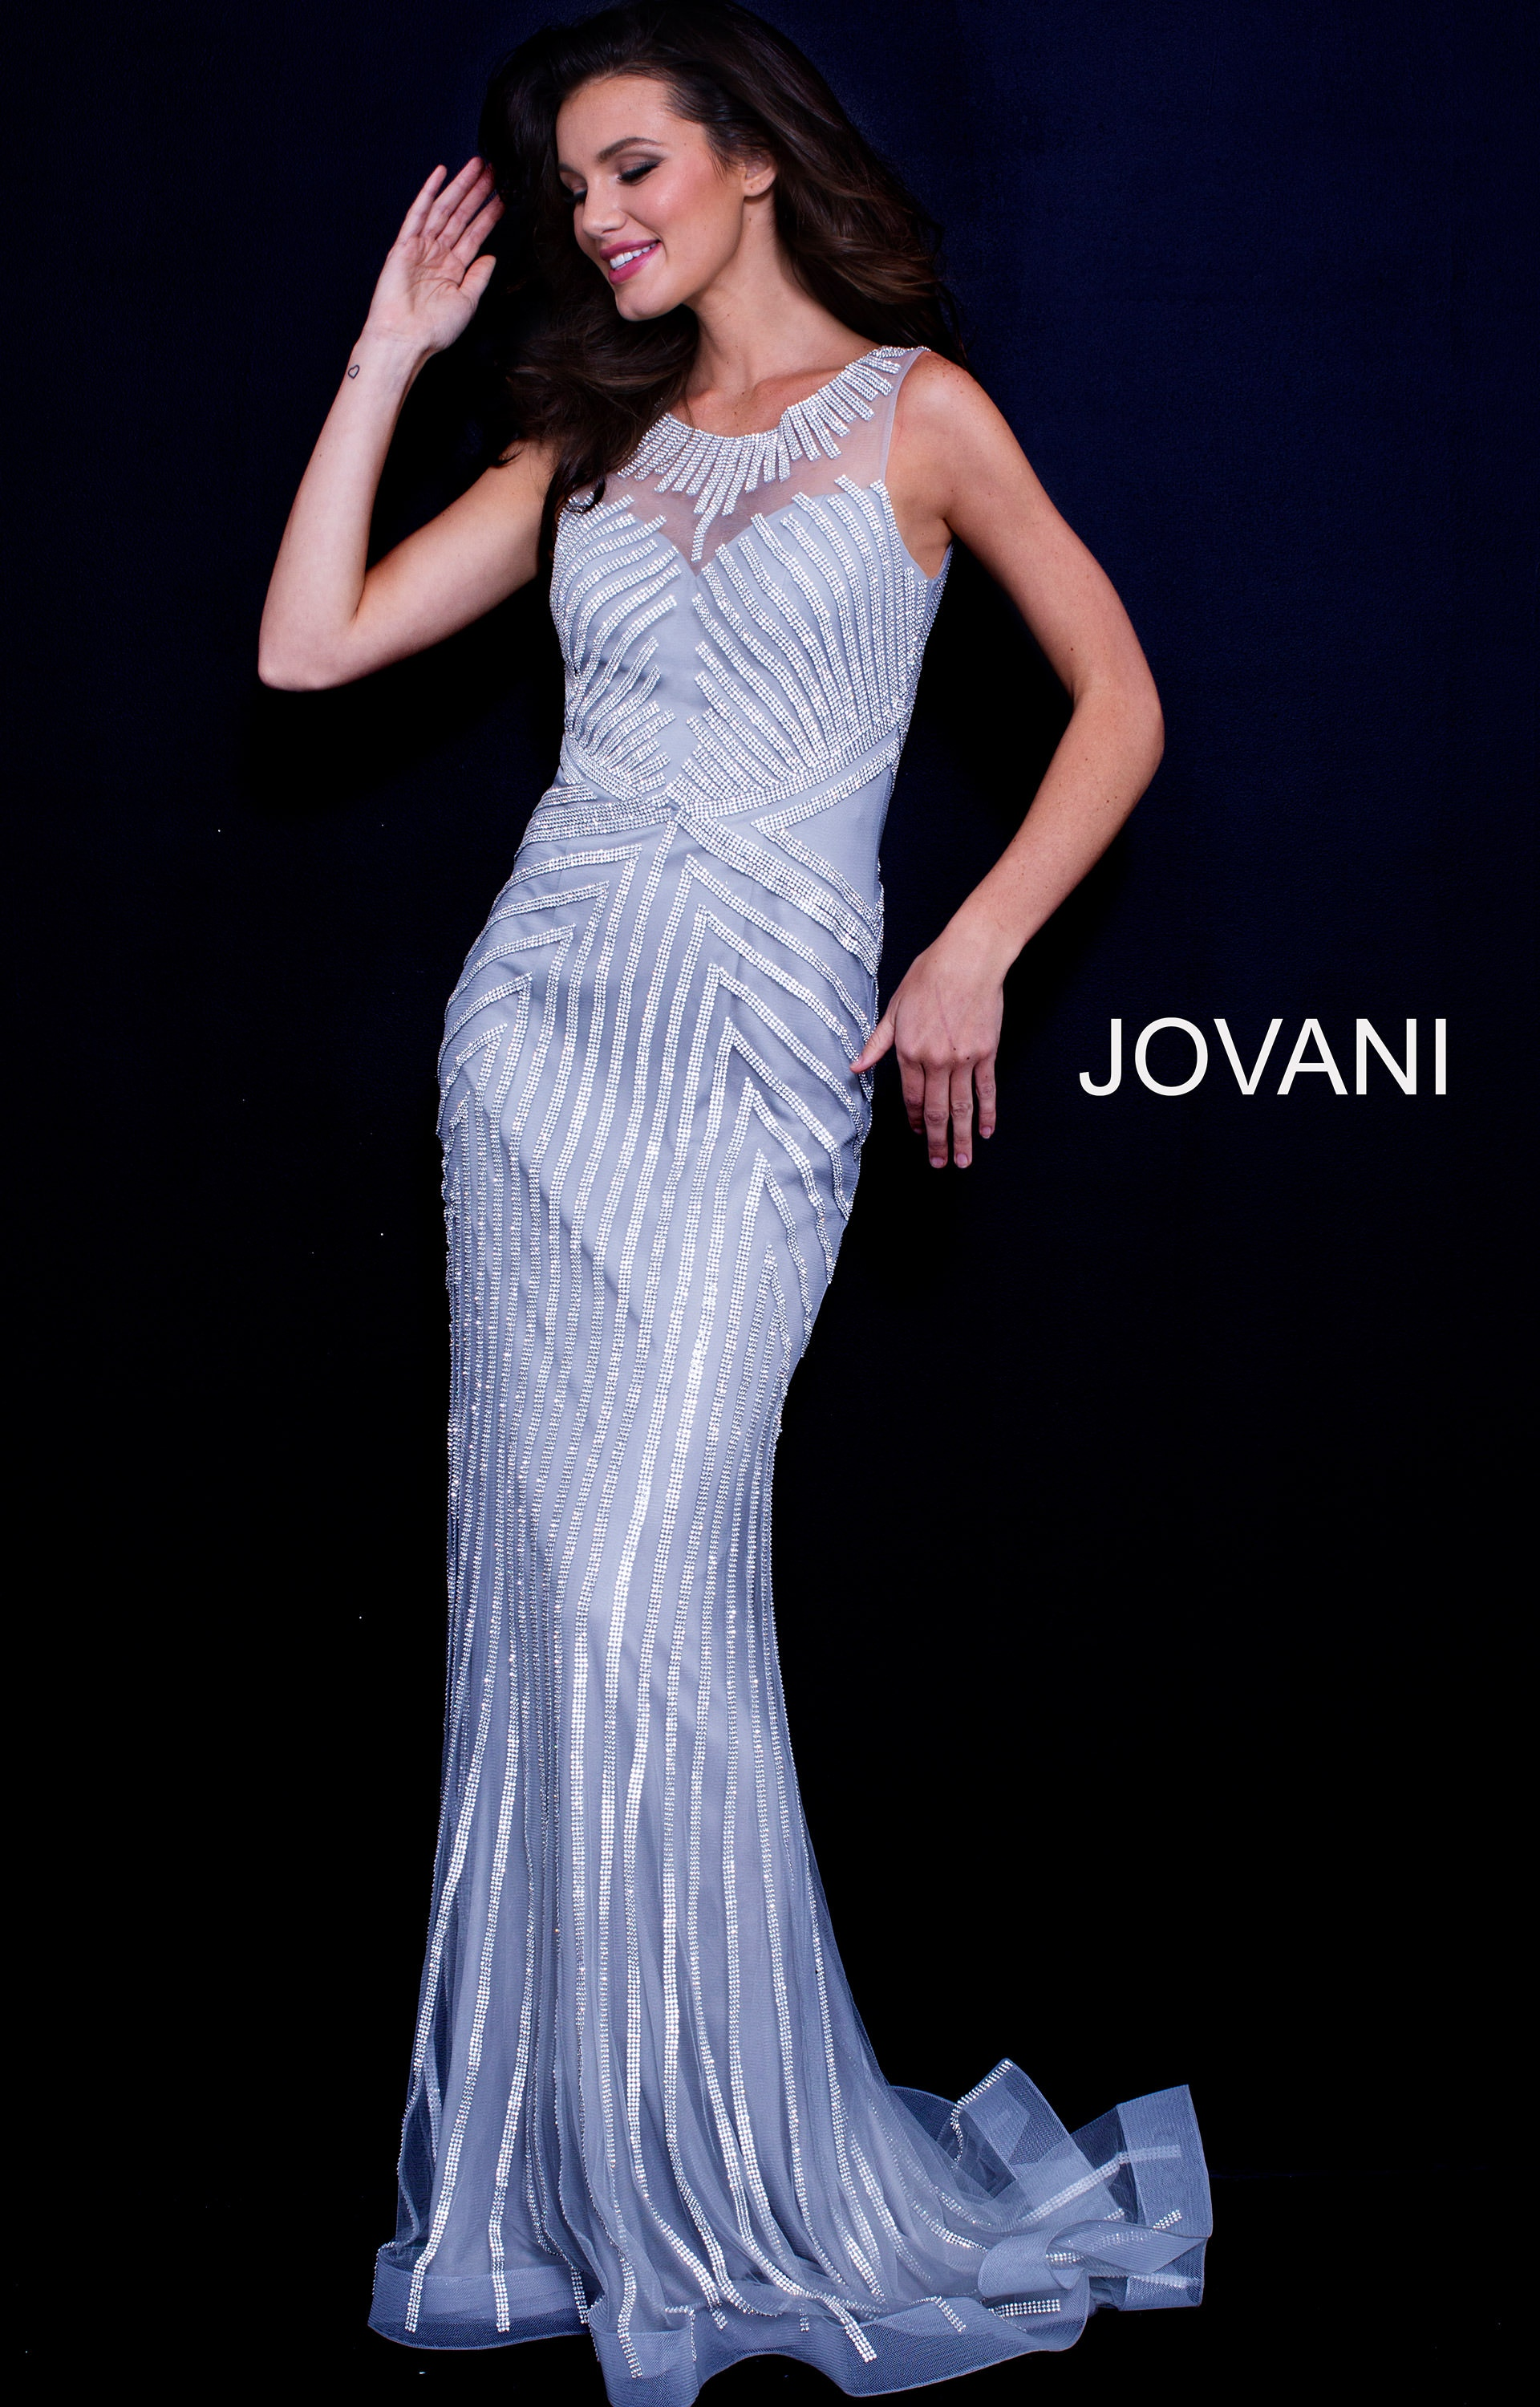 Jovani 58150 - Long High Neck Gown with Train Prom Dress